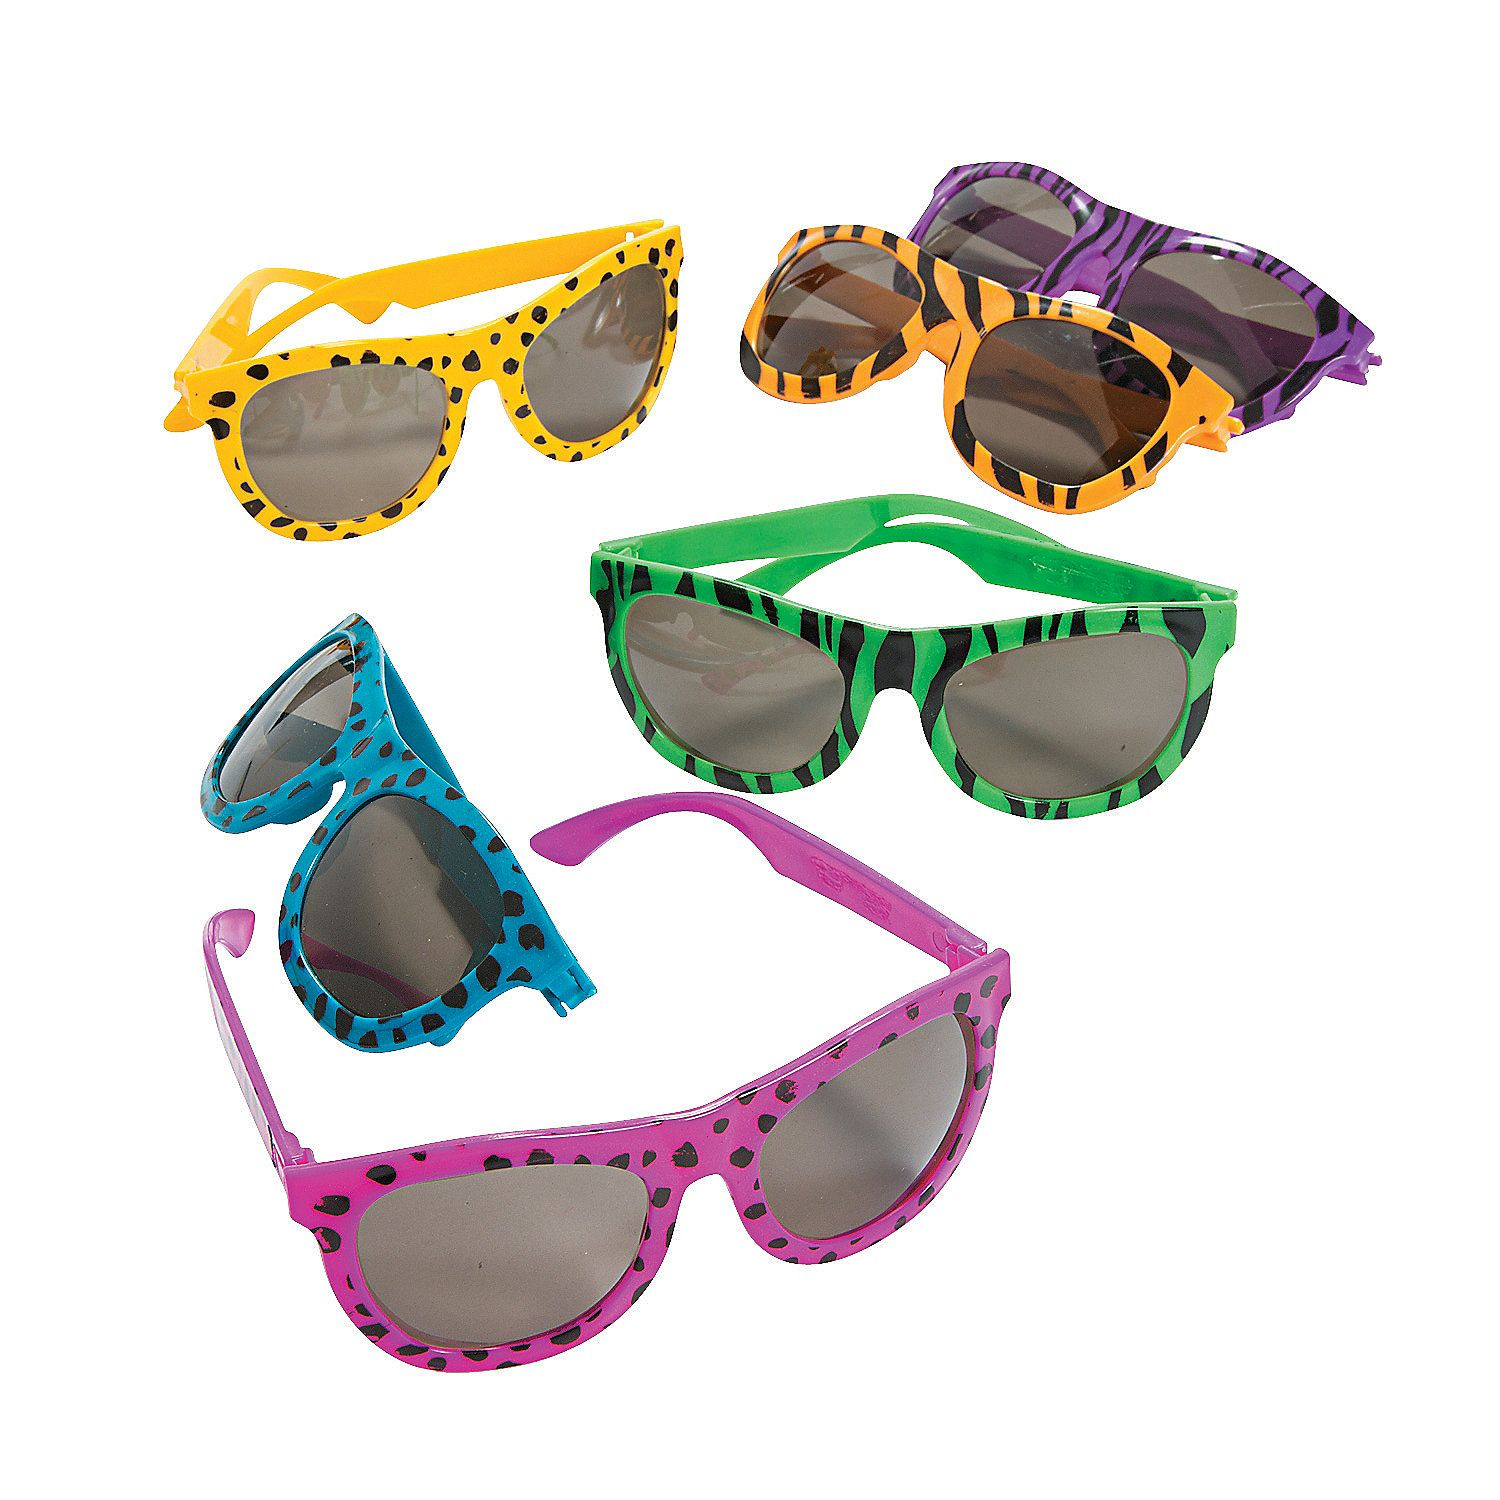 0e385c574d5 Bright Animal Print Sunglasses - OrientalTrading.com - Cute party favors  for a Wild Animal party.